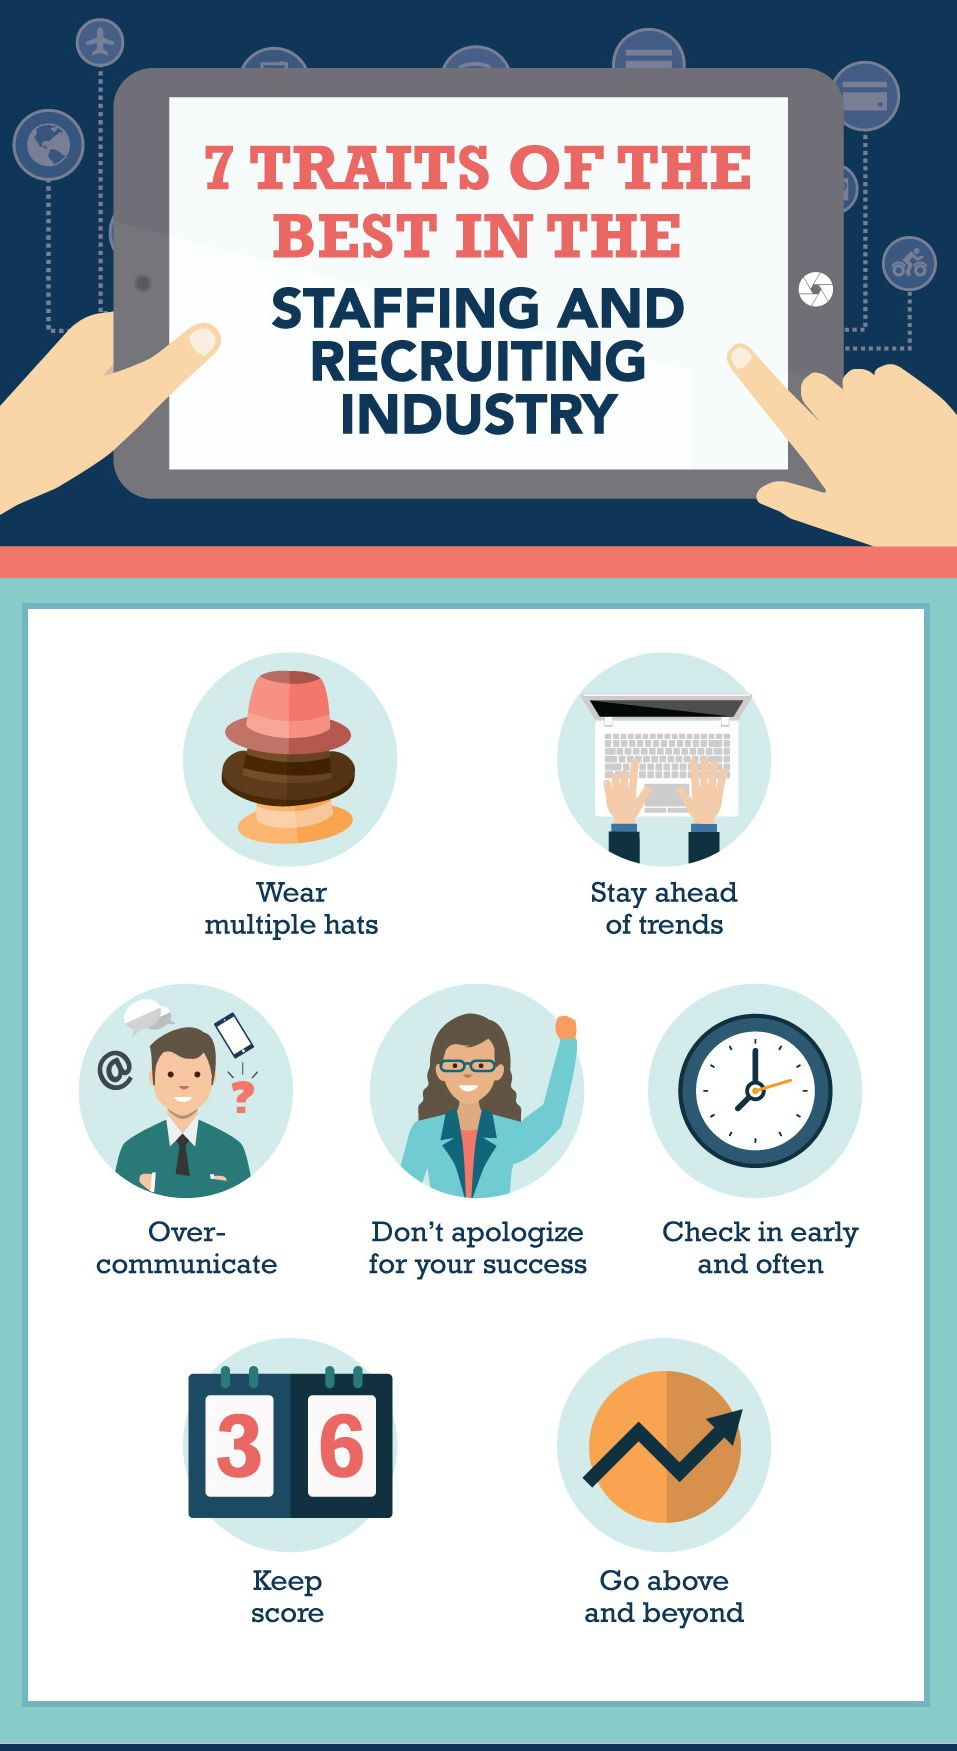 7 Traits Of The Best In The Staffing And Recruiting Industry Hr Hrtech Recruitment Recruiting Staf Staffing Agency Staffing Company Recruitment Marketing